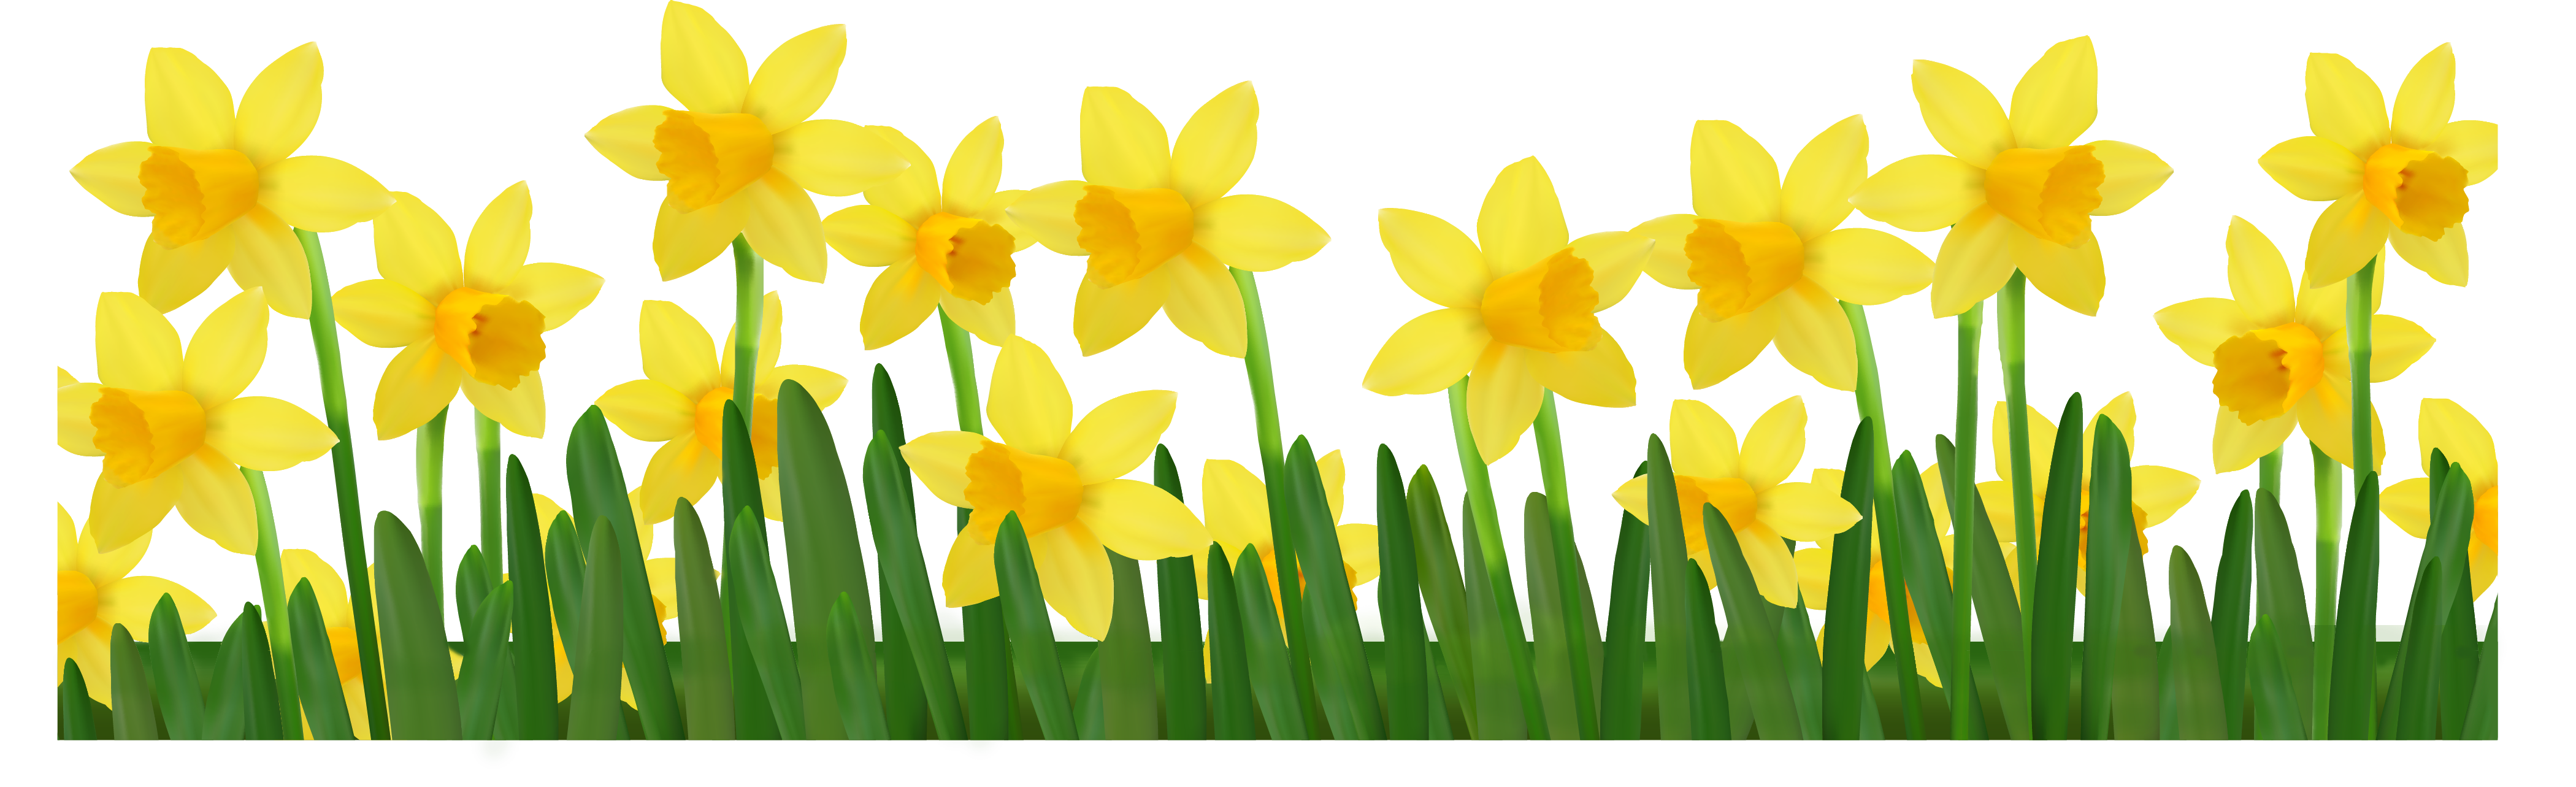 Daffodil vector yellow. Free images daffodils download